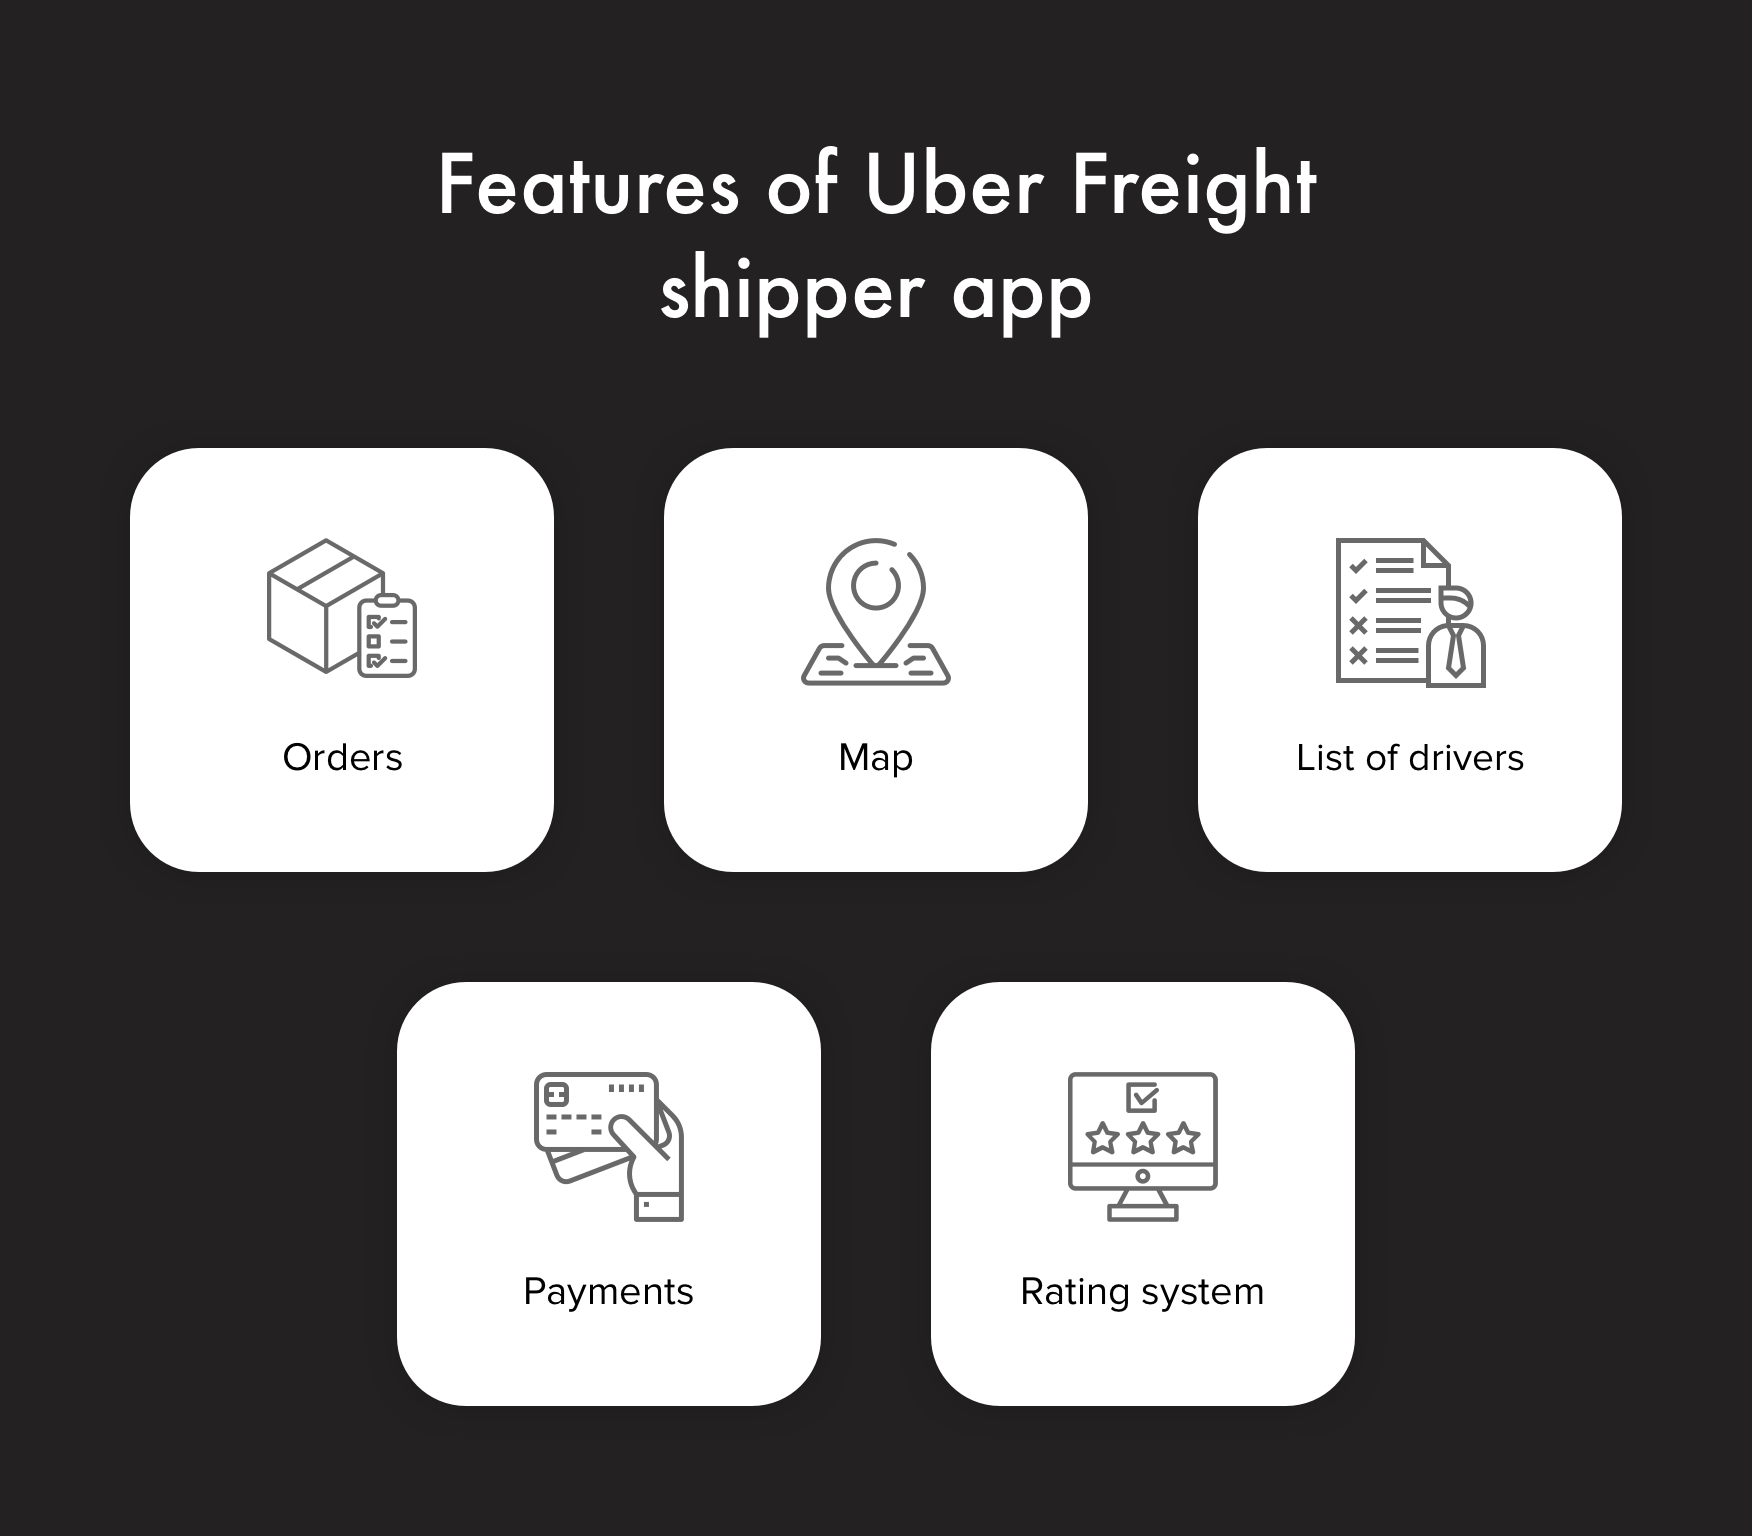 Basic features of Uber for trucking shipper app